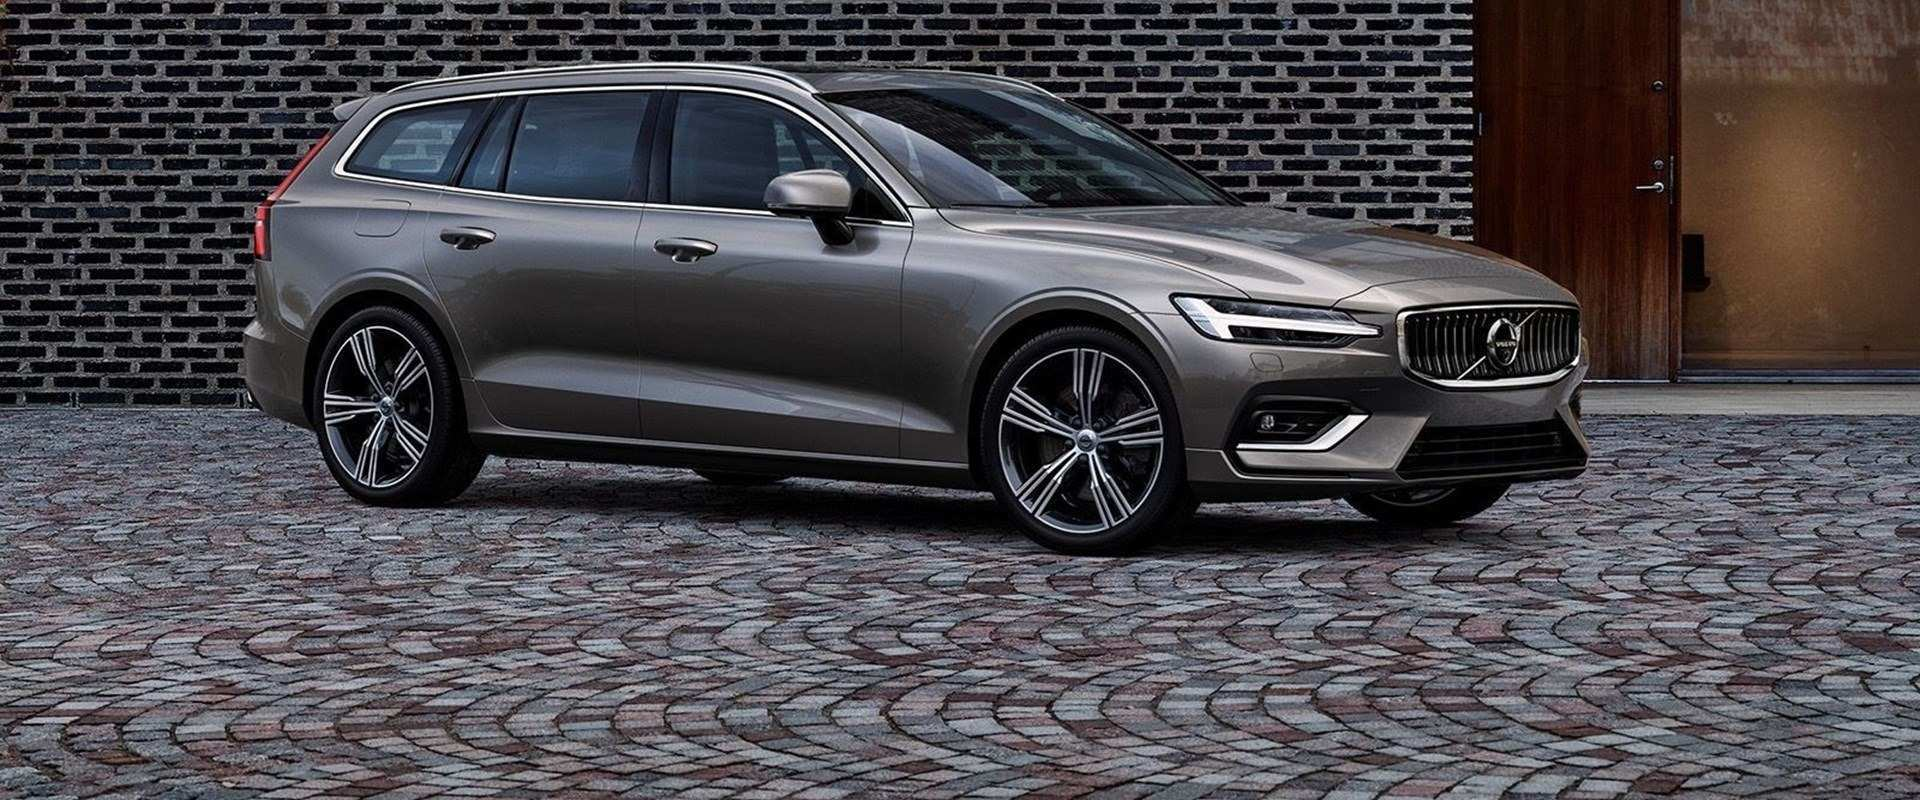 38 New 2019 Volvo 860 Specs Speed Test with 2019 Volvo 860 Specs